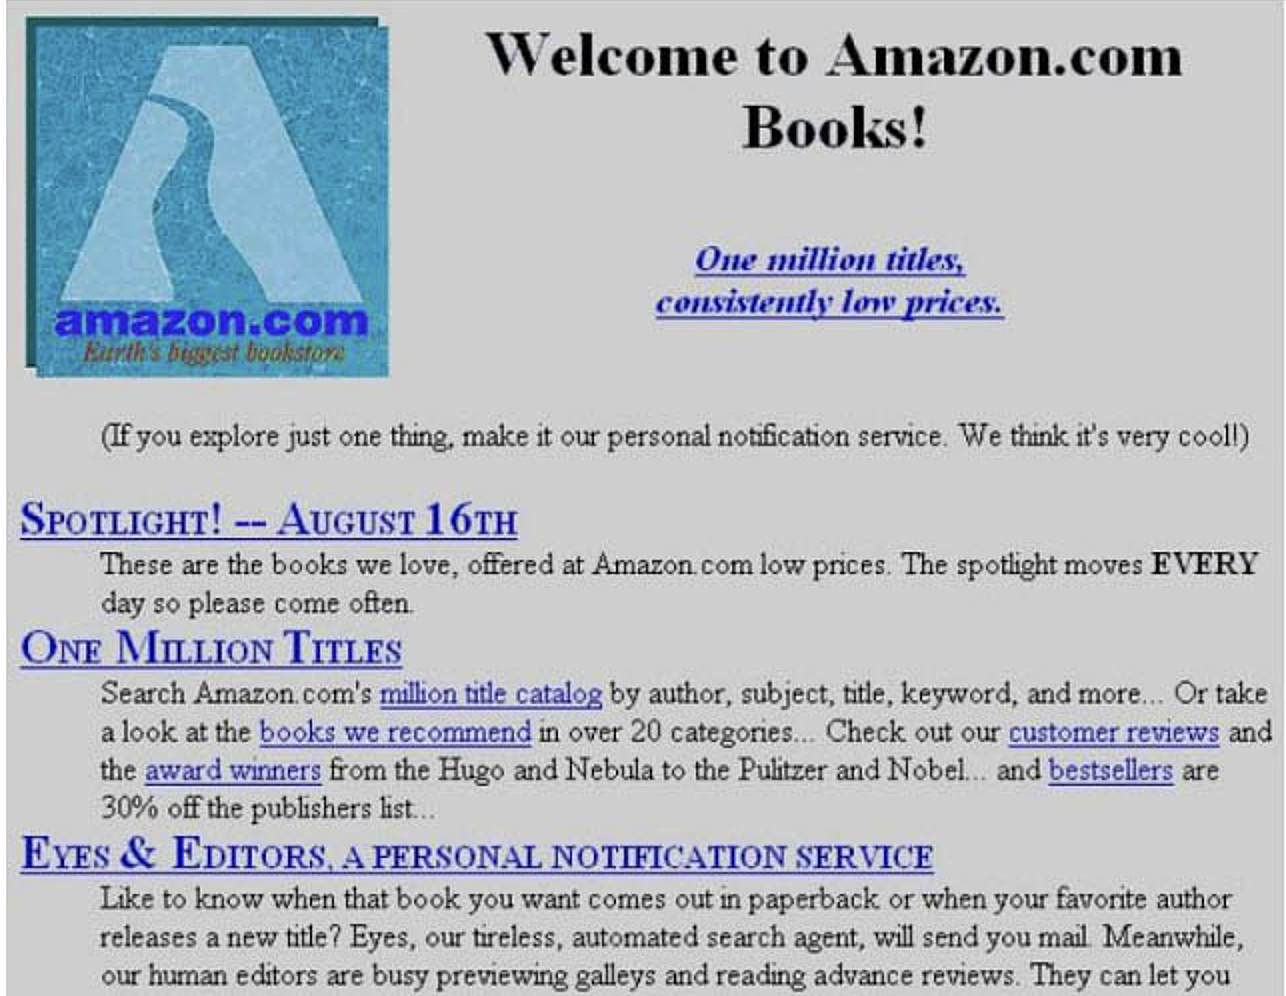 Amazon's first web page. In 1995 it simply sold books.